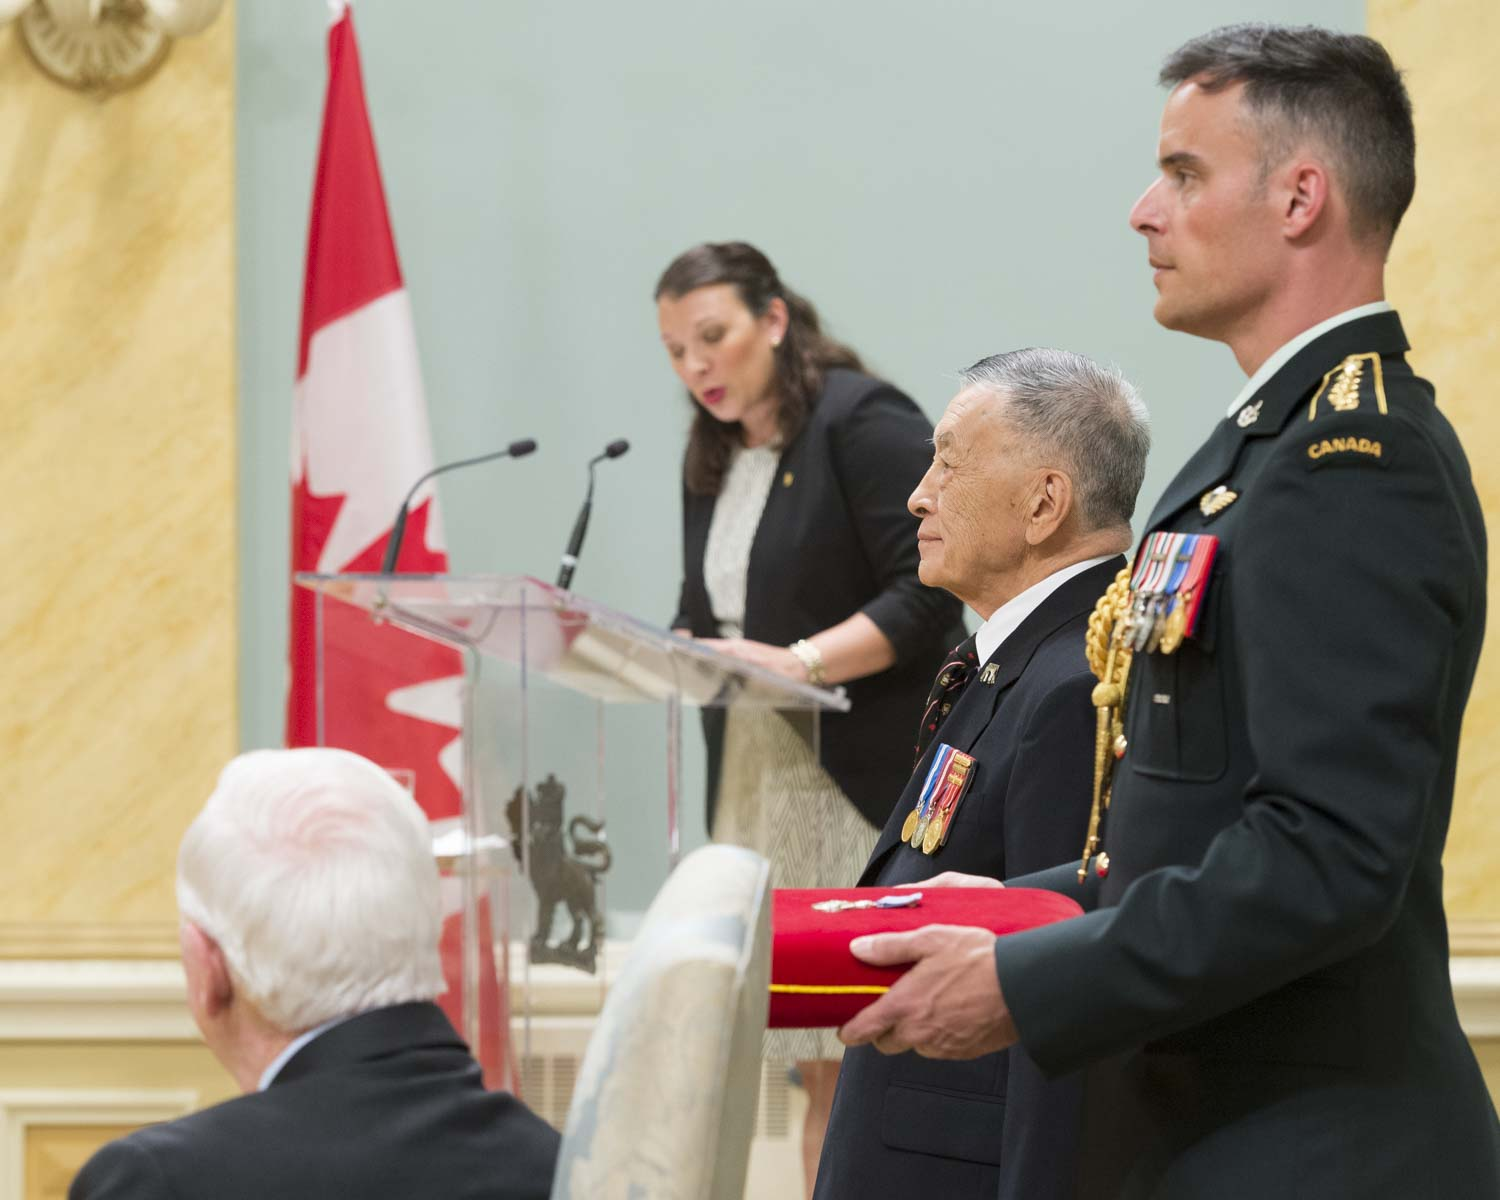 His Excellency presented the Meritorious Service Medal to Howe Lee. With gentle persuasion and steely determination, former reservist Howe Lee spearheaded the creation of the Chinese Canadian Military Museum in Vancouver. It showcases the contributions made by Chinese-Canadian veterans during the First and Second world wars and the Korean War, and ensures that their stories are recognized as part of our country's military heritage.